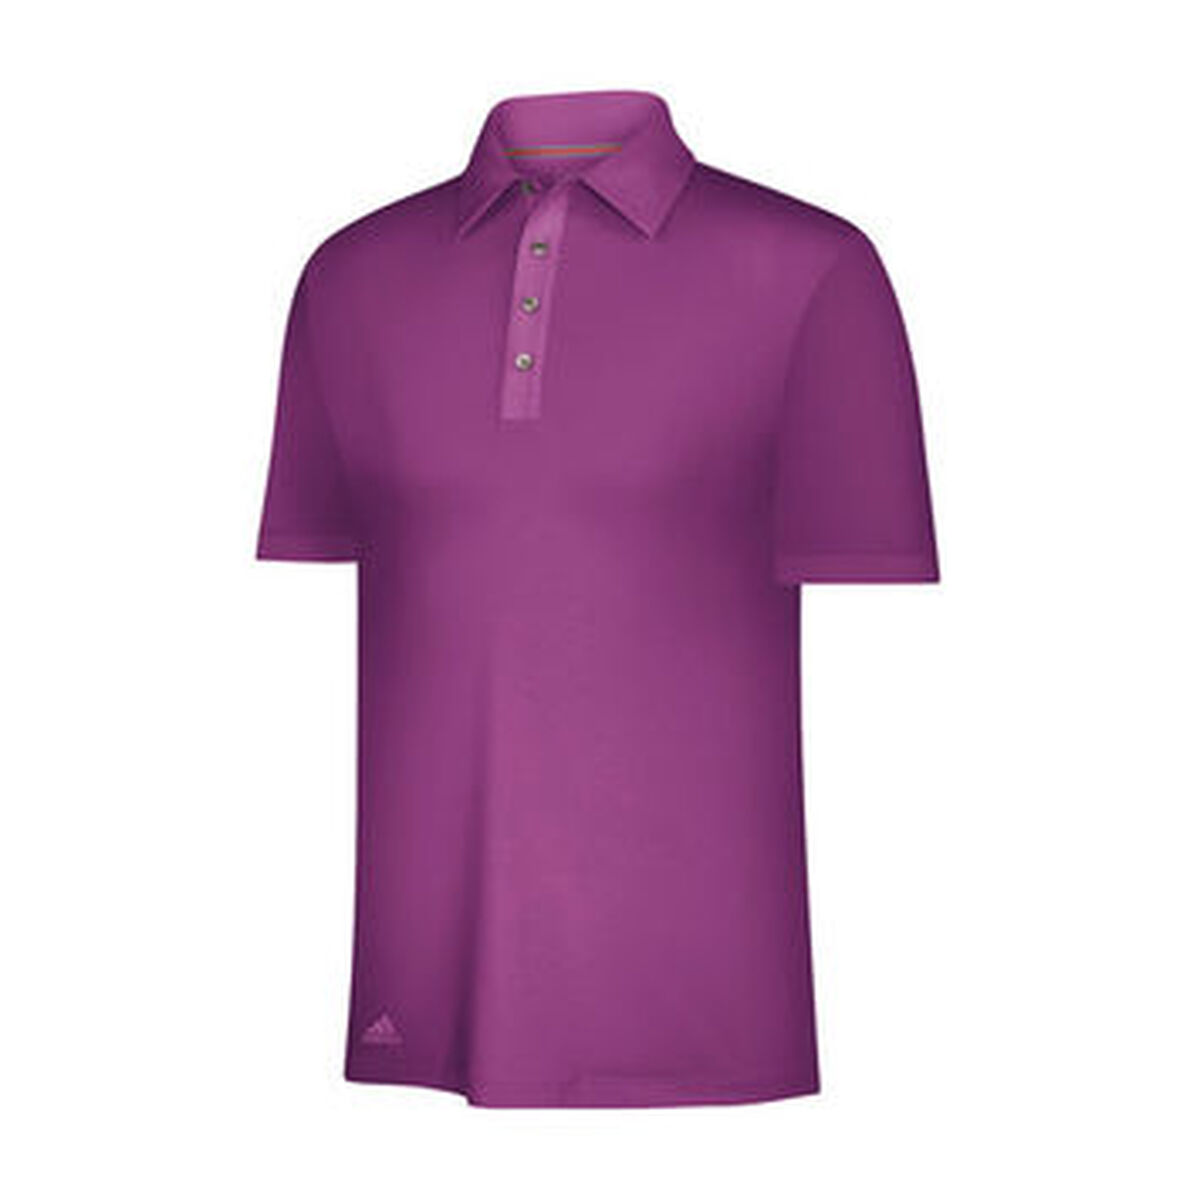 13675bf3 adidas adiPURE- Heather Blocker SS Polo: Shop Quality adidas Men's ...